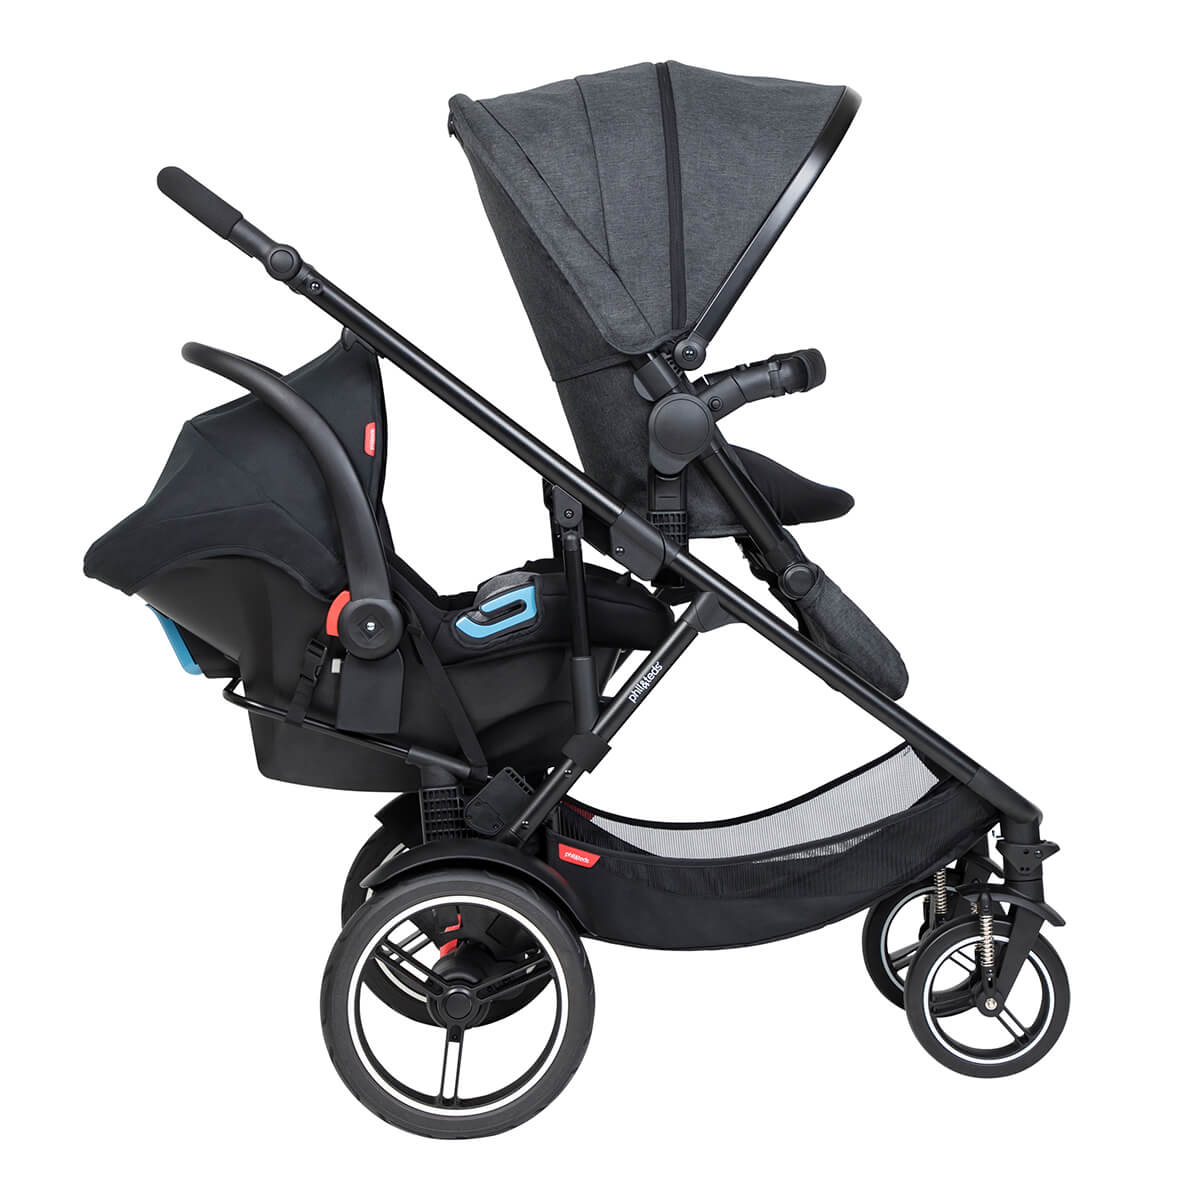 https://cdn.accentuate.io/4509917544525/19466204250306/philteds-voyager-buggy-in-forward-facing-mode-with-travel-system-in-the-rear-v1626485611260.jpg?1200x1200